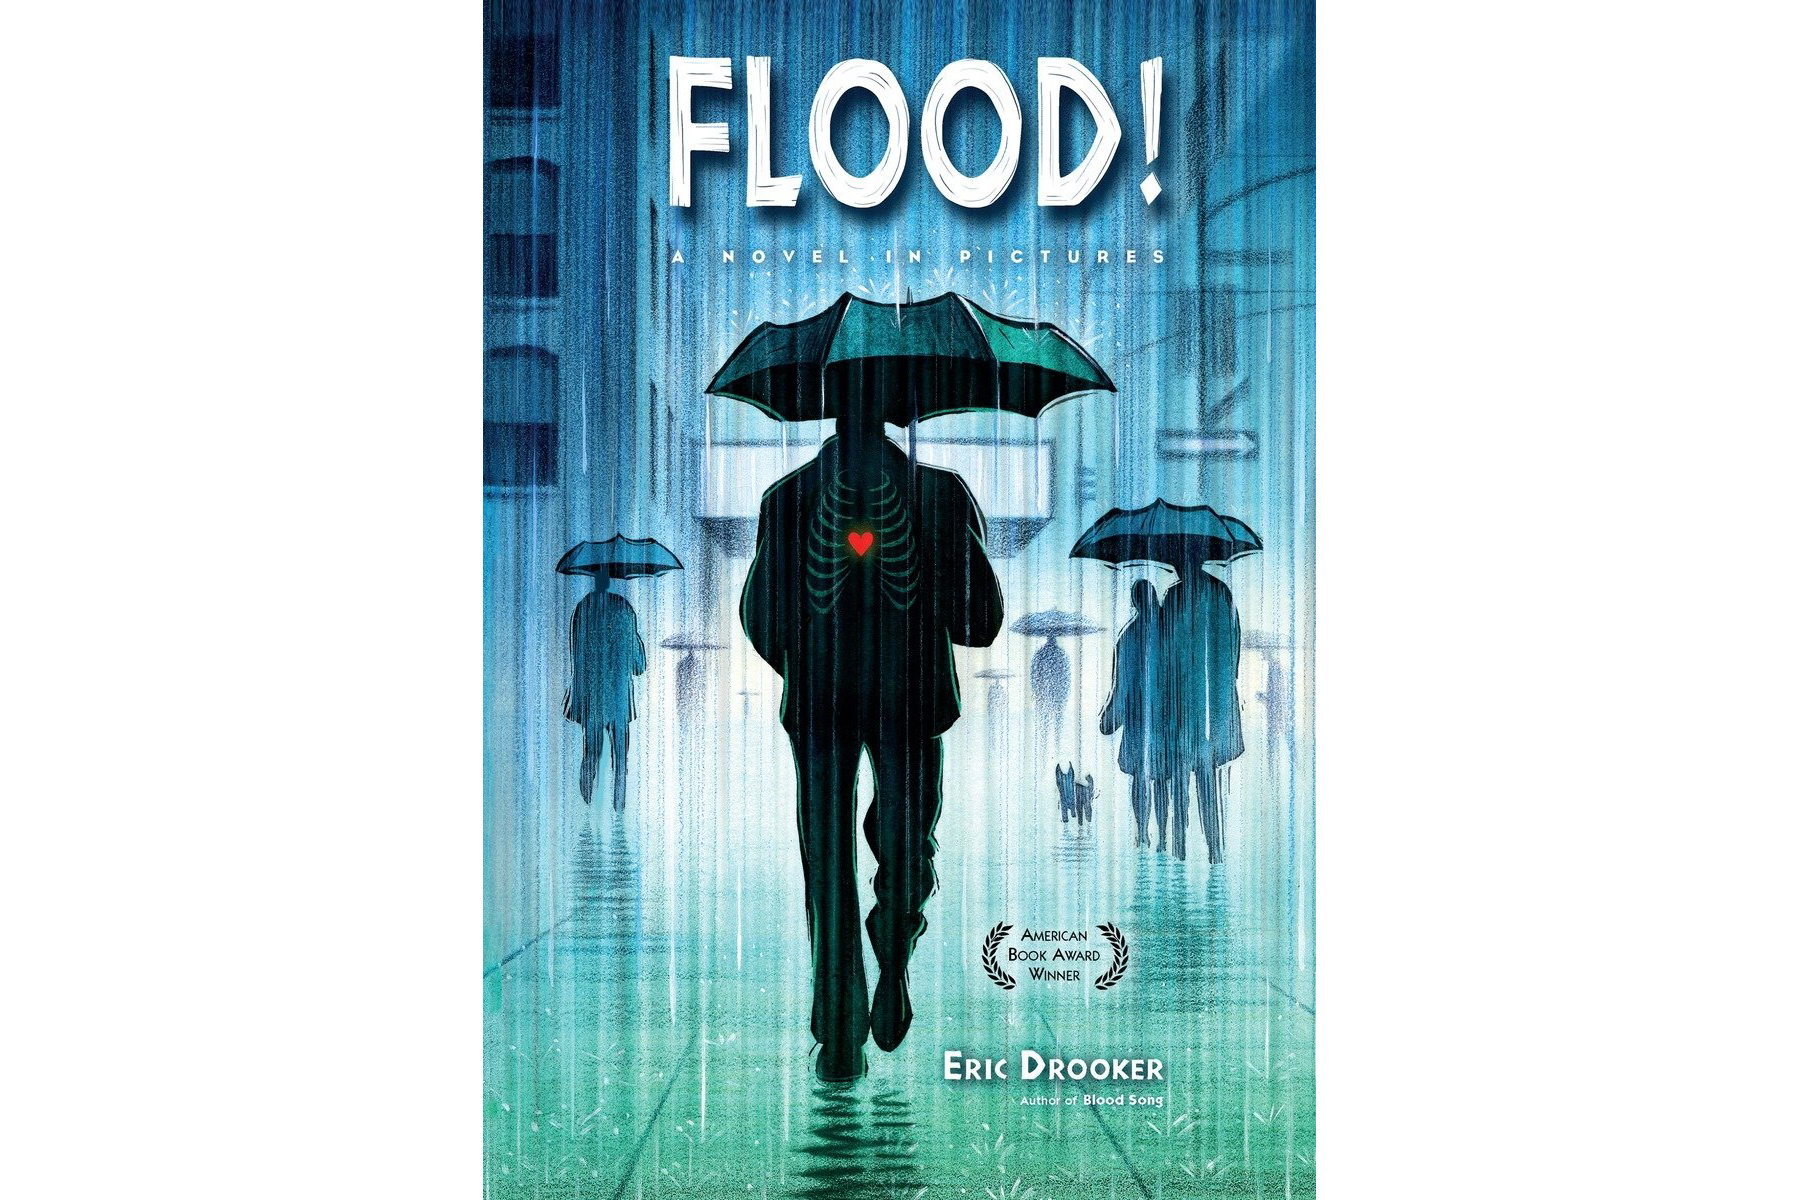 Flood, by Eric Drooker